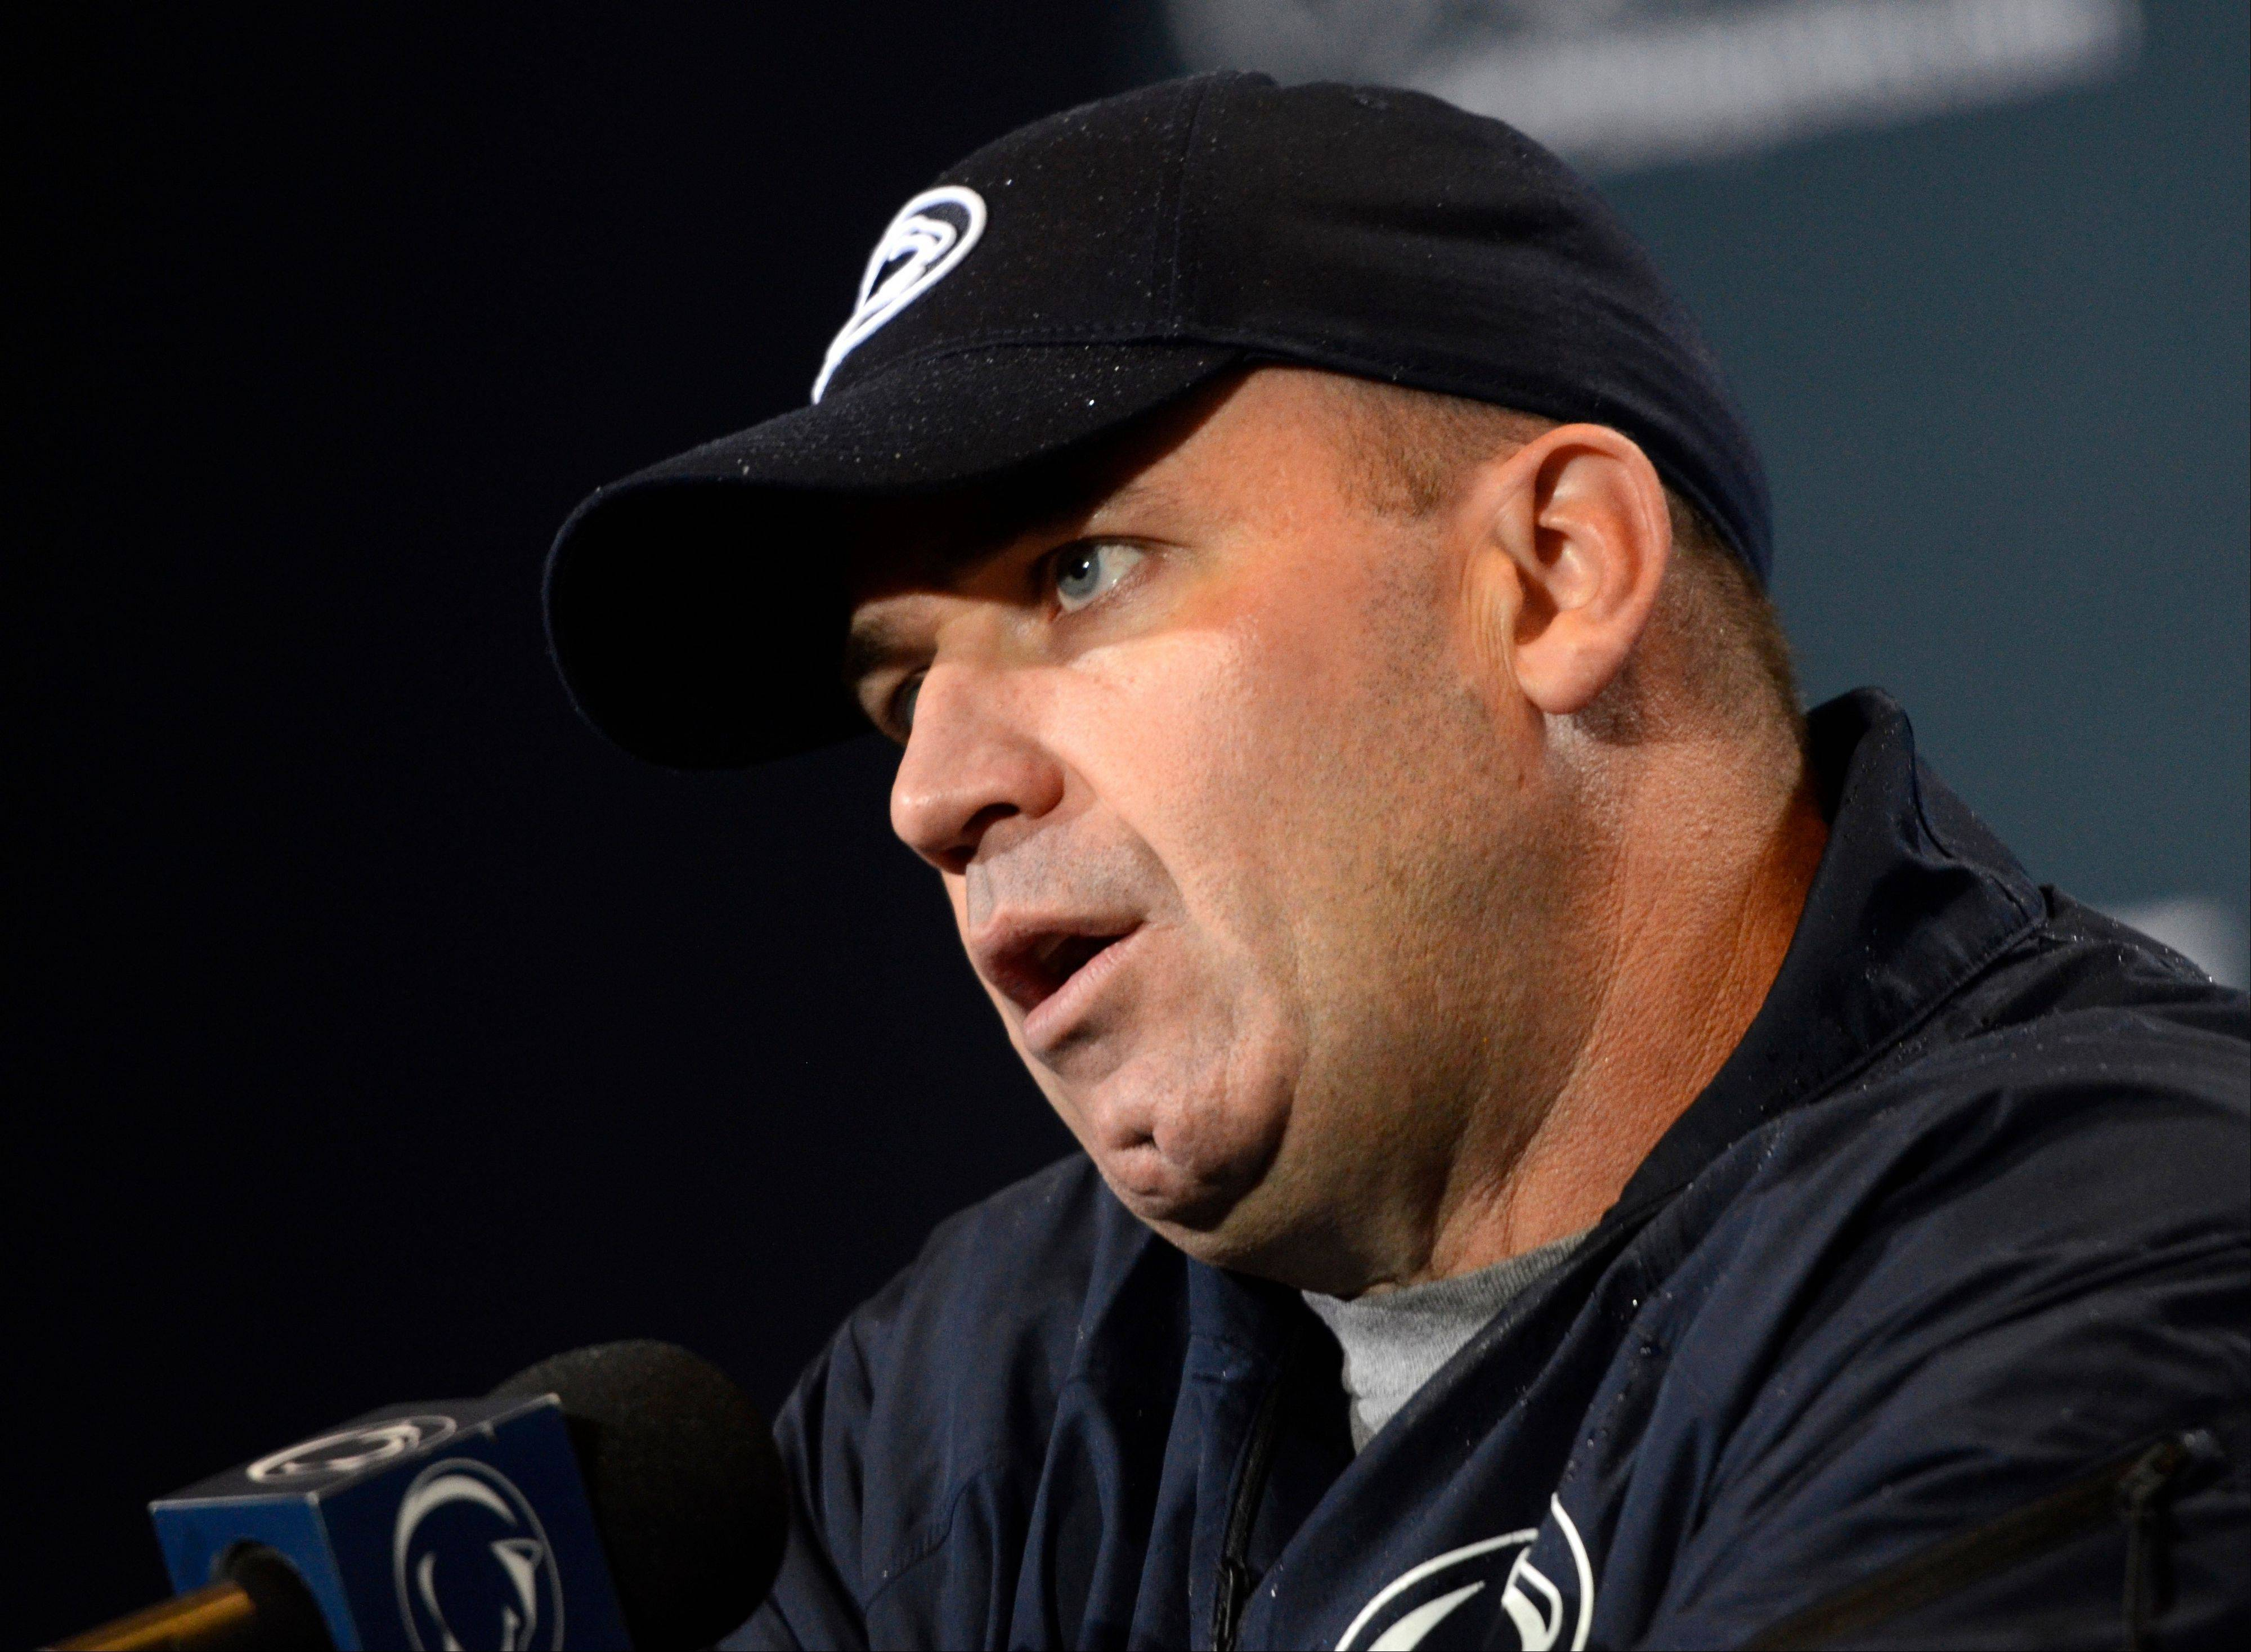 NCAA officials, satisfied that Penn State has made significant changes to its athletics program, is planning to restore five football scholarship next season. By 2016-17, head coach Bill O'Brien's program should have all of its scholarships restored.